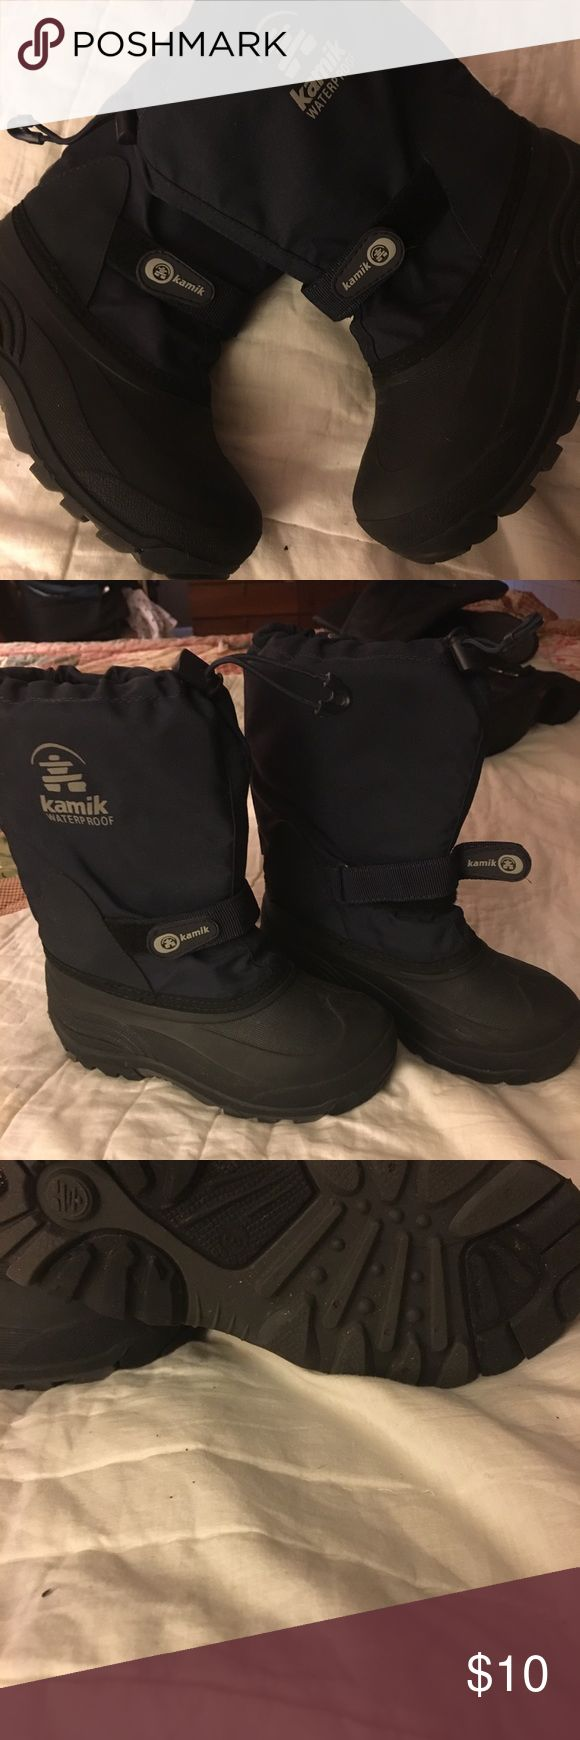 Kamik boys snow boots. Size 3 Kamik waterproof snow boots with removable thermolite liner. Velcro closure around ankle and drawstring tie on top. Used less than give times. In great condition. Size 3 Kamik Shoes Rain & Snow Boots